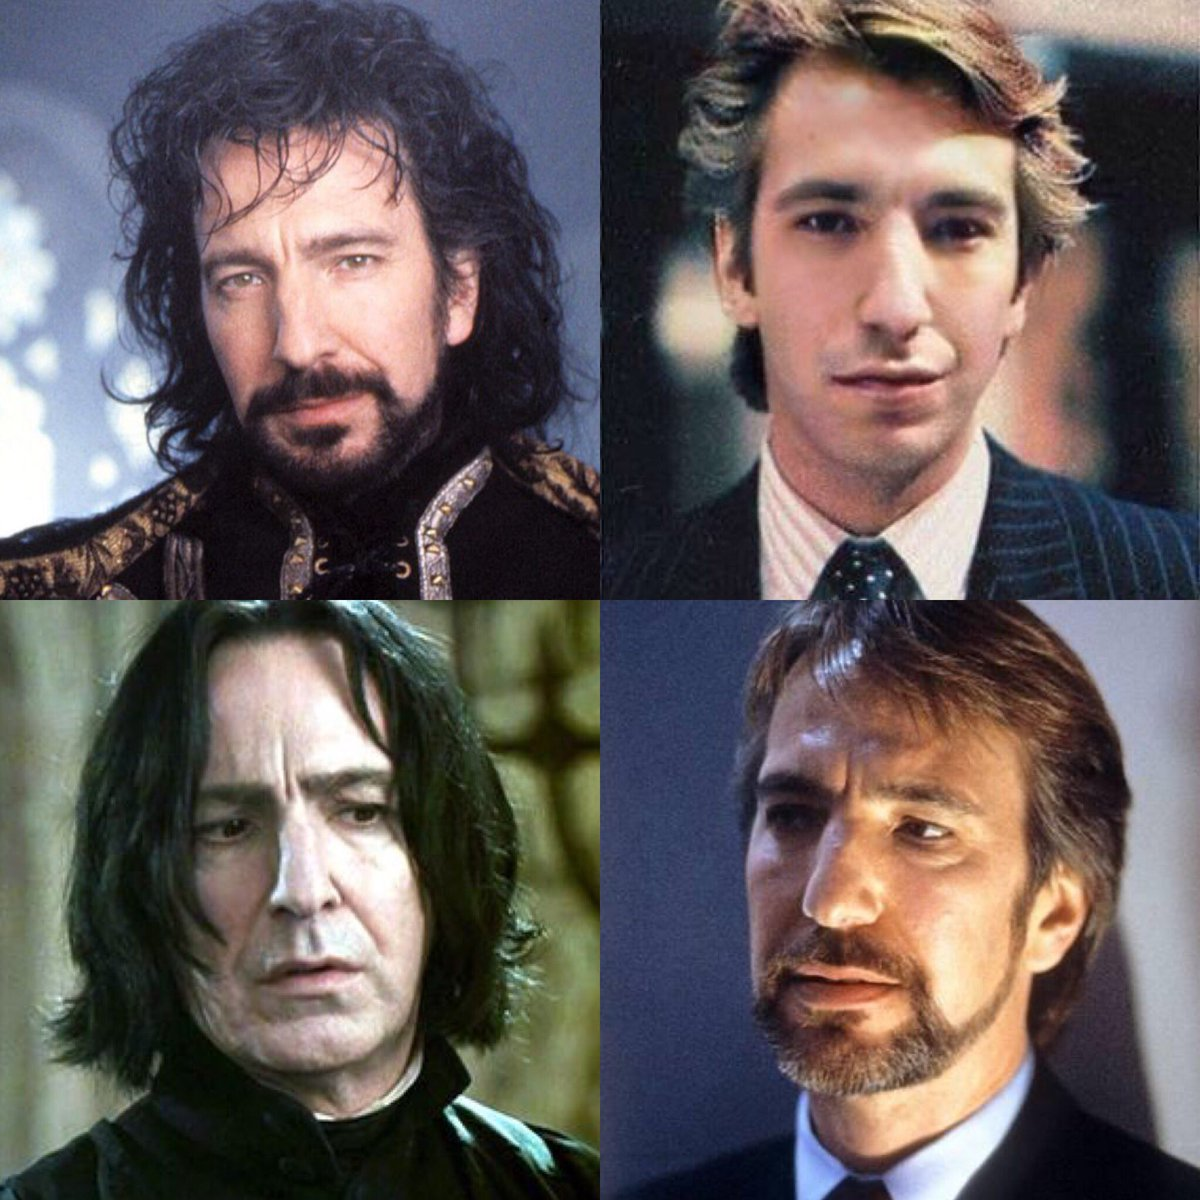 Any 4 pics of Alan Rickman together looks like an amazing 80's new wave band you wish existed